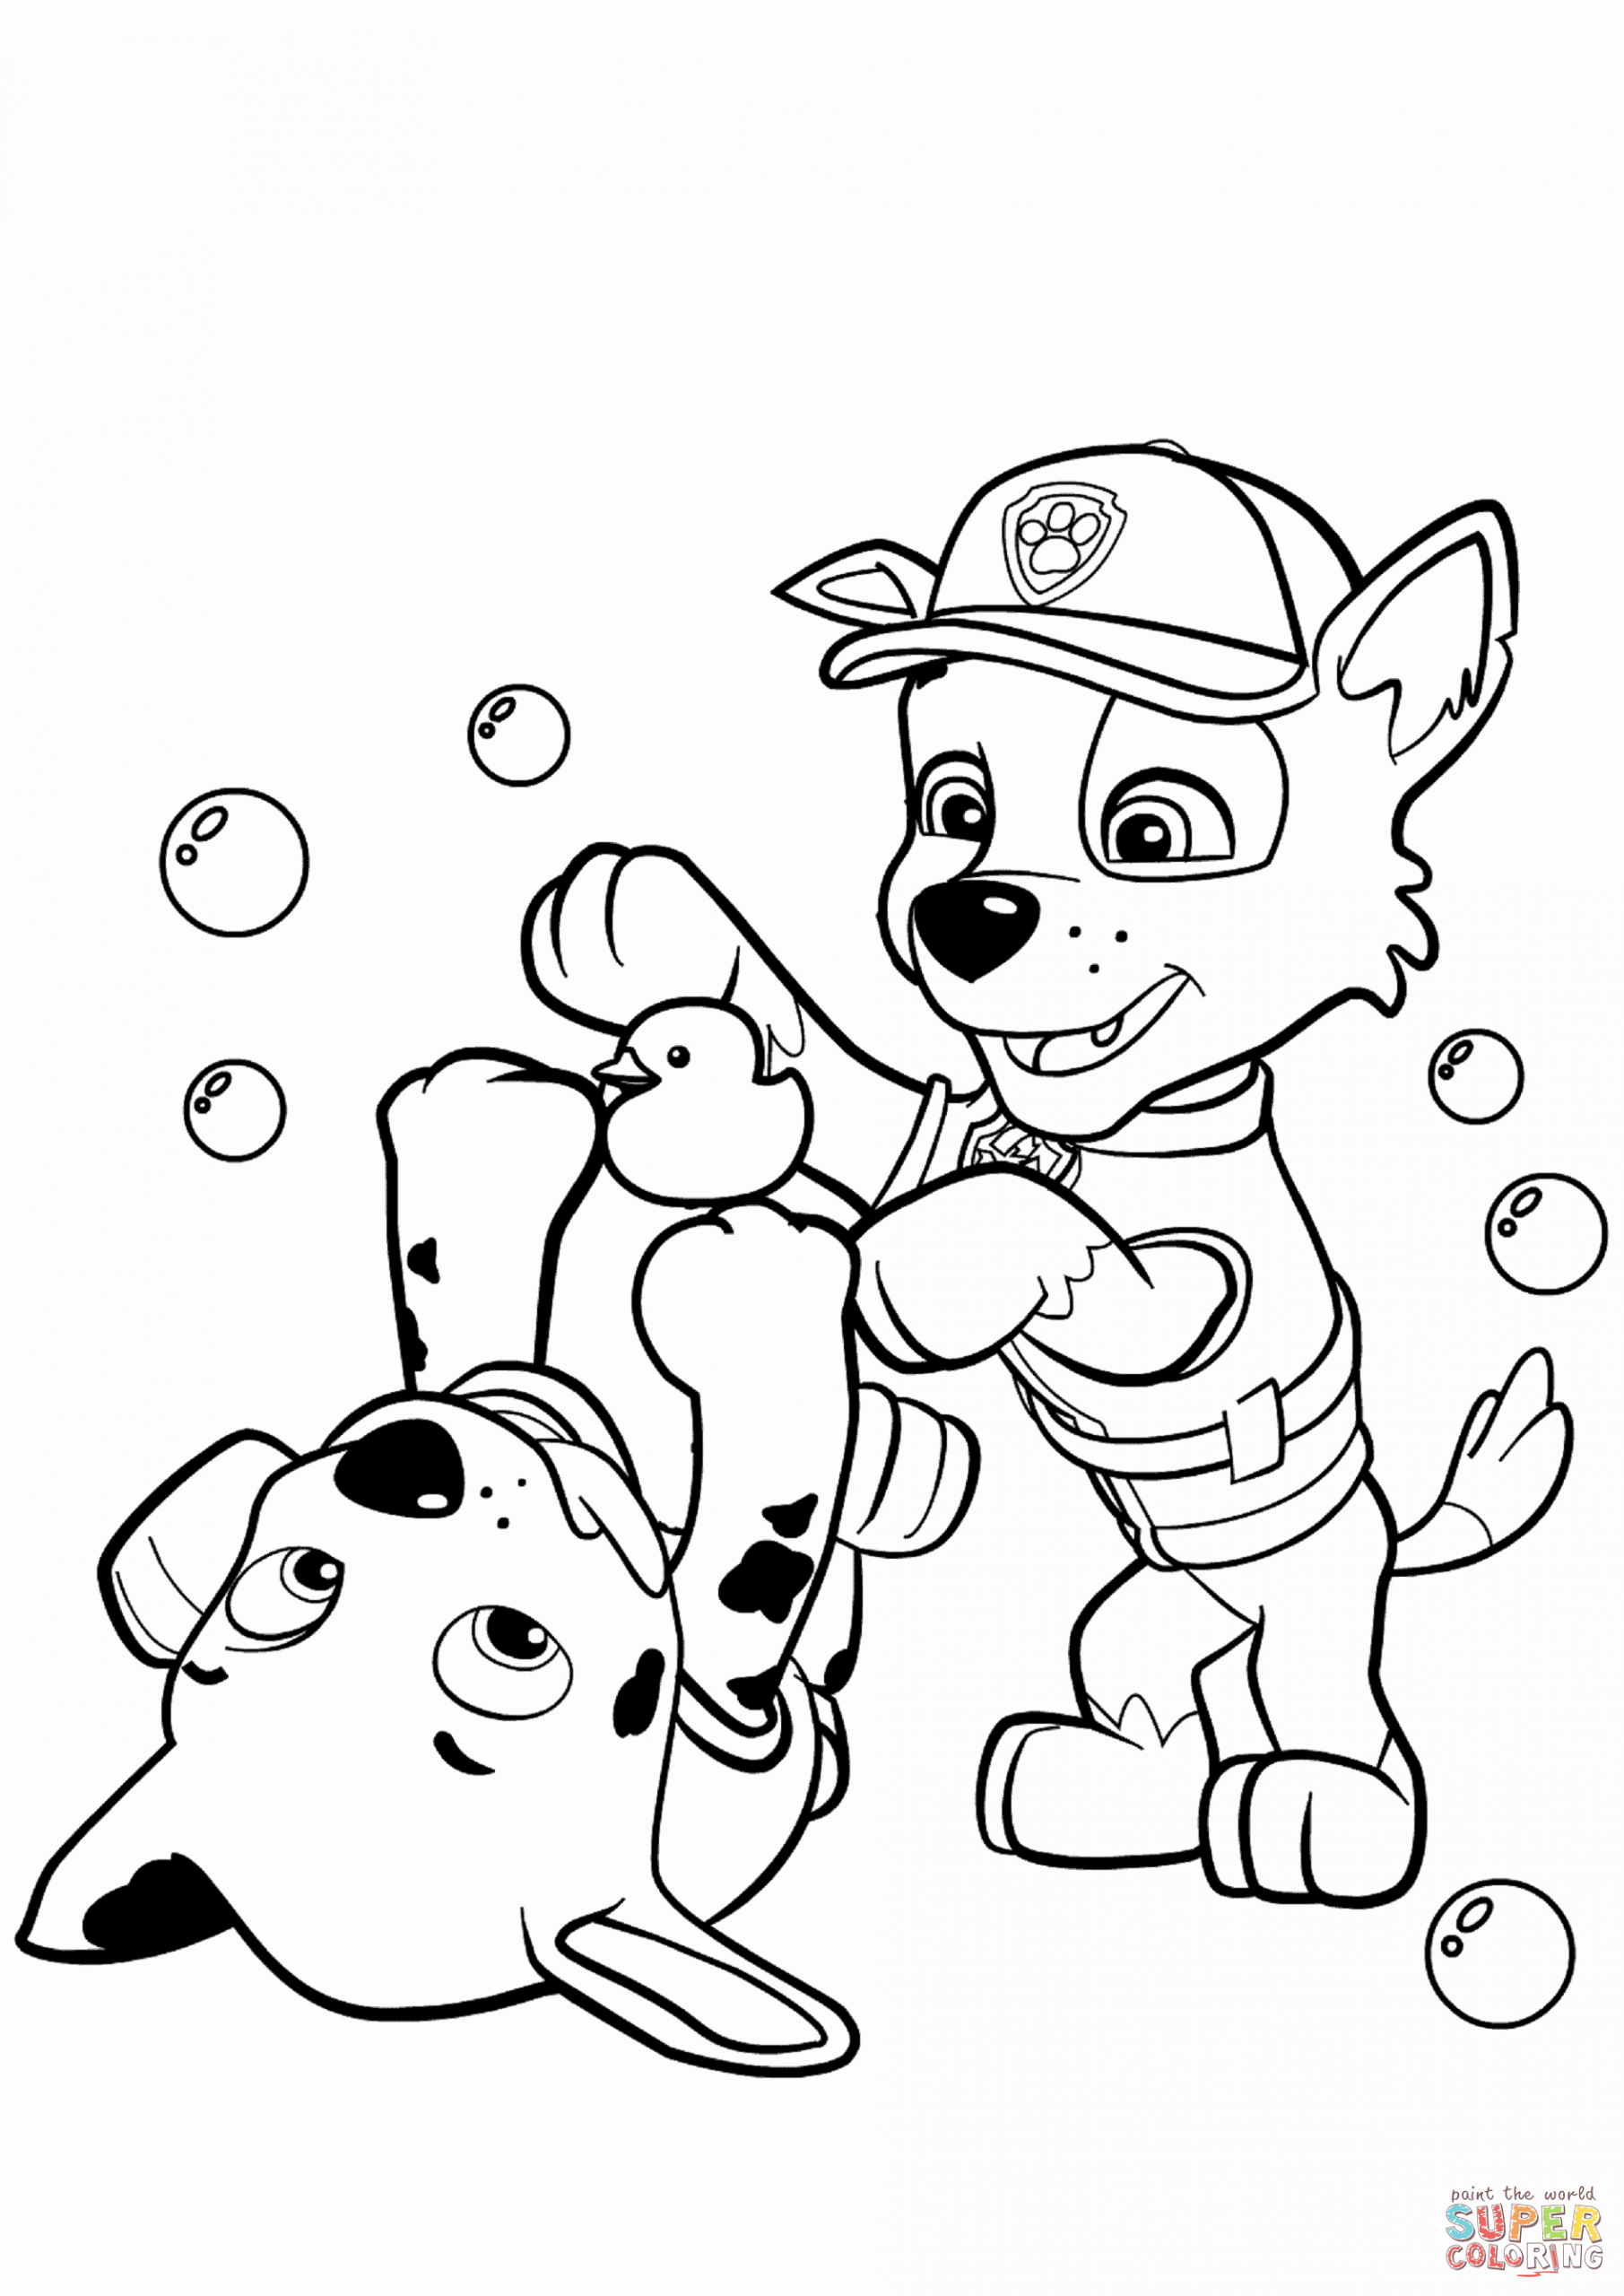 Paw Patrol Marshall Coloring Page Awesome Paw Patrol Marshall Drawing At Getdrawings Colo In 2020 Paw Patrol Coloring Pages Paw Patrol Coloring Paw Patrol Printables